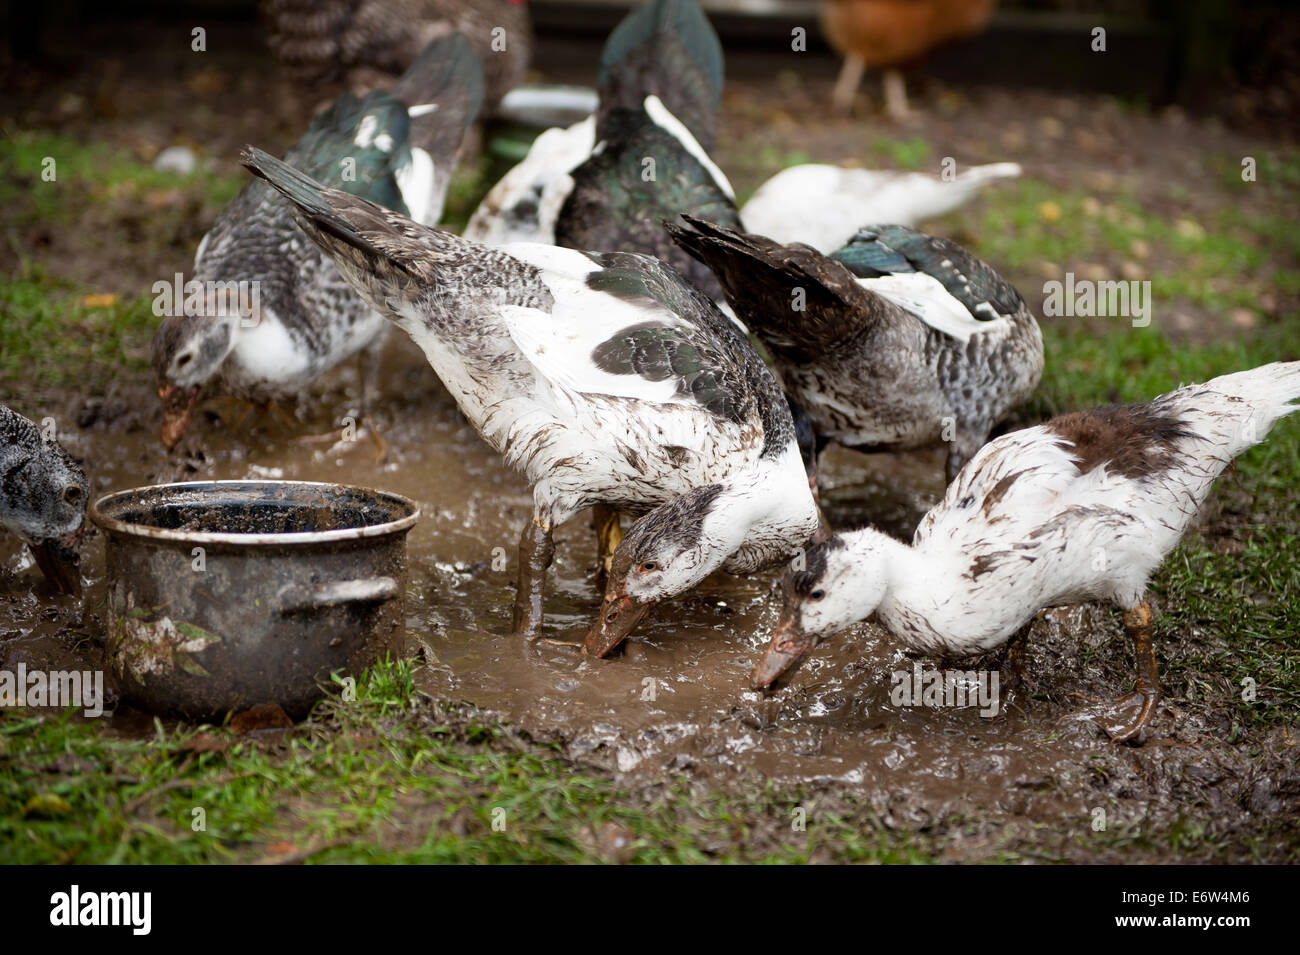 Farm ducks sip mud - Stock Image